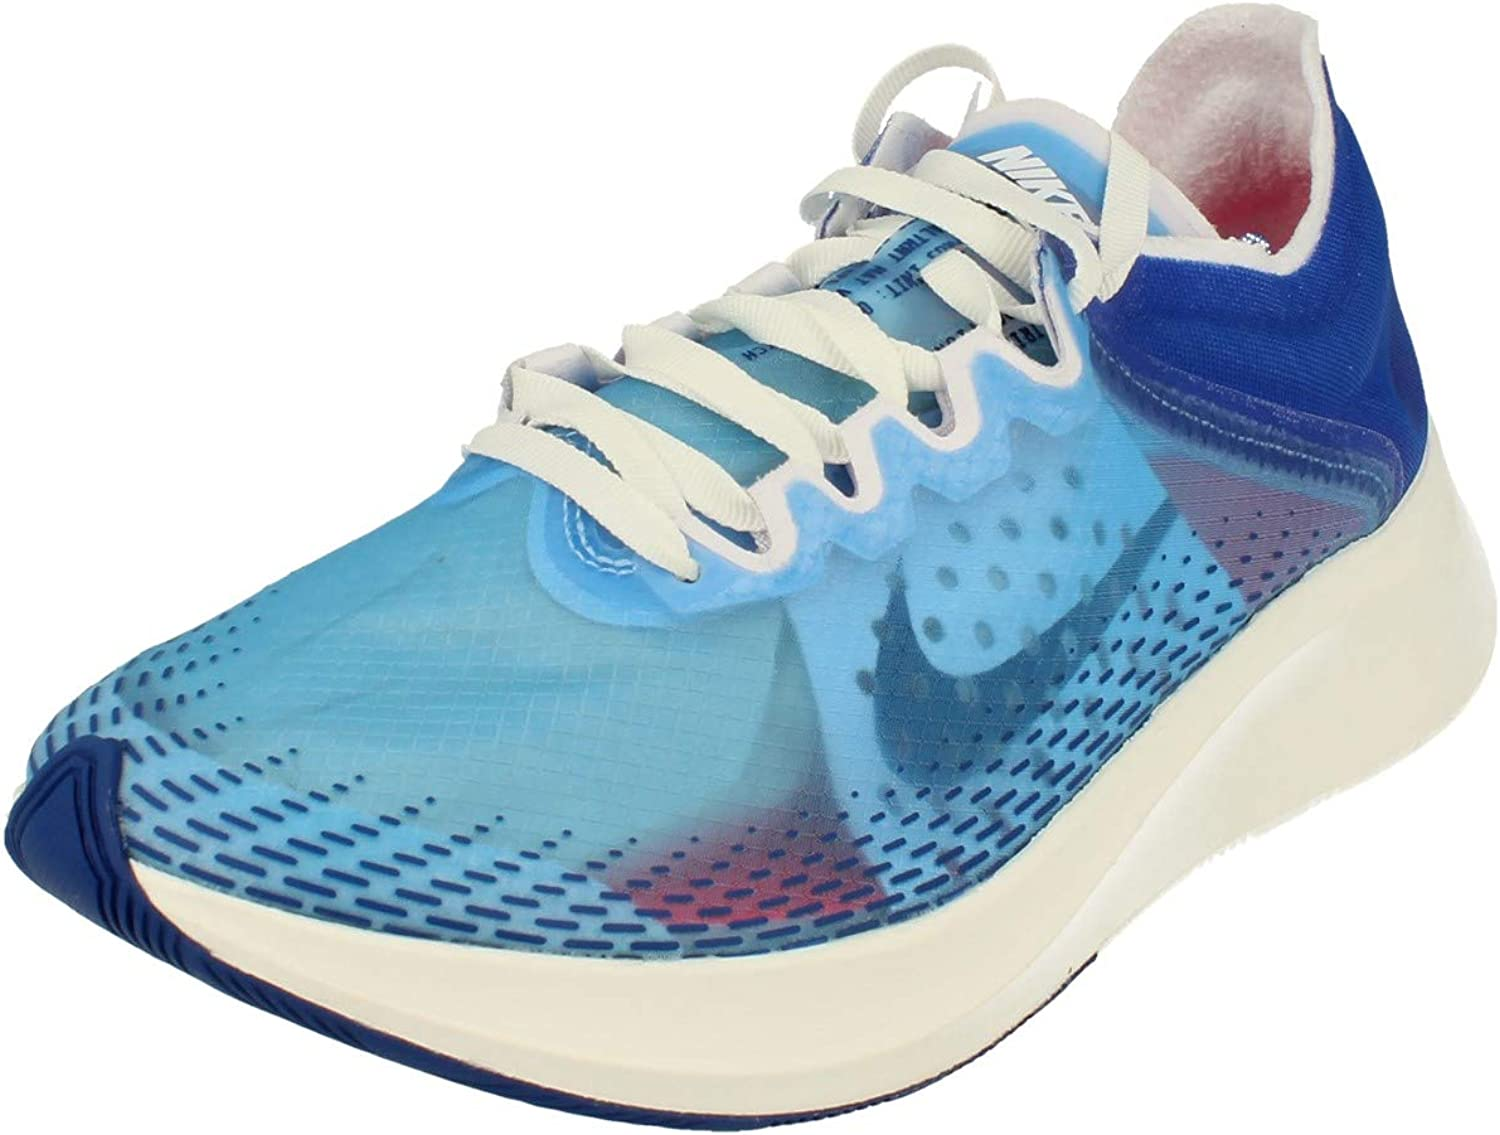 Nike Mujeres Zoom Fly SP Fast Running Trainers BV0389 Sneakers Zapatos (UK 6 US 8.5 EU 40, Indigo Fog 446): Amazon.es: Zapatos y complementos